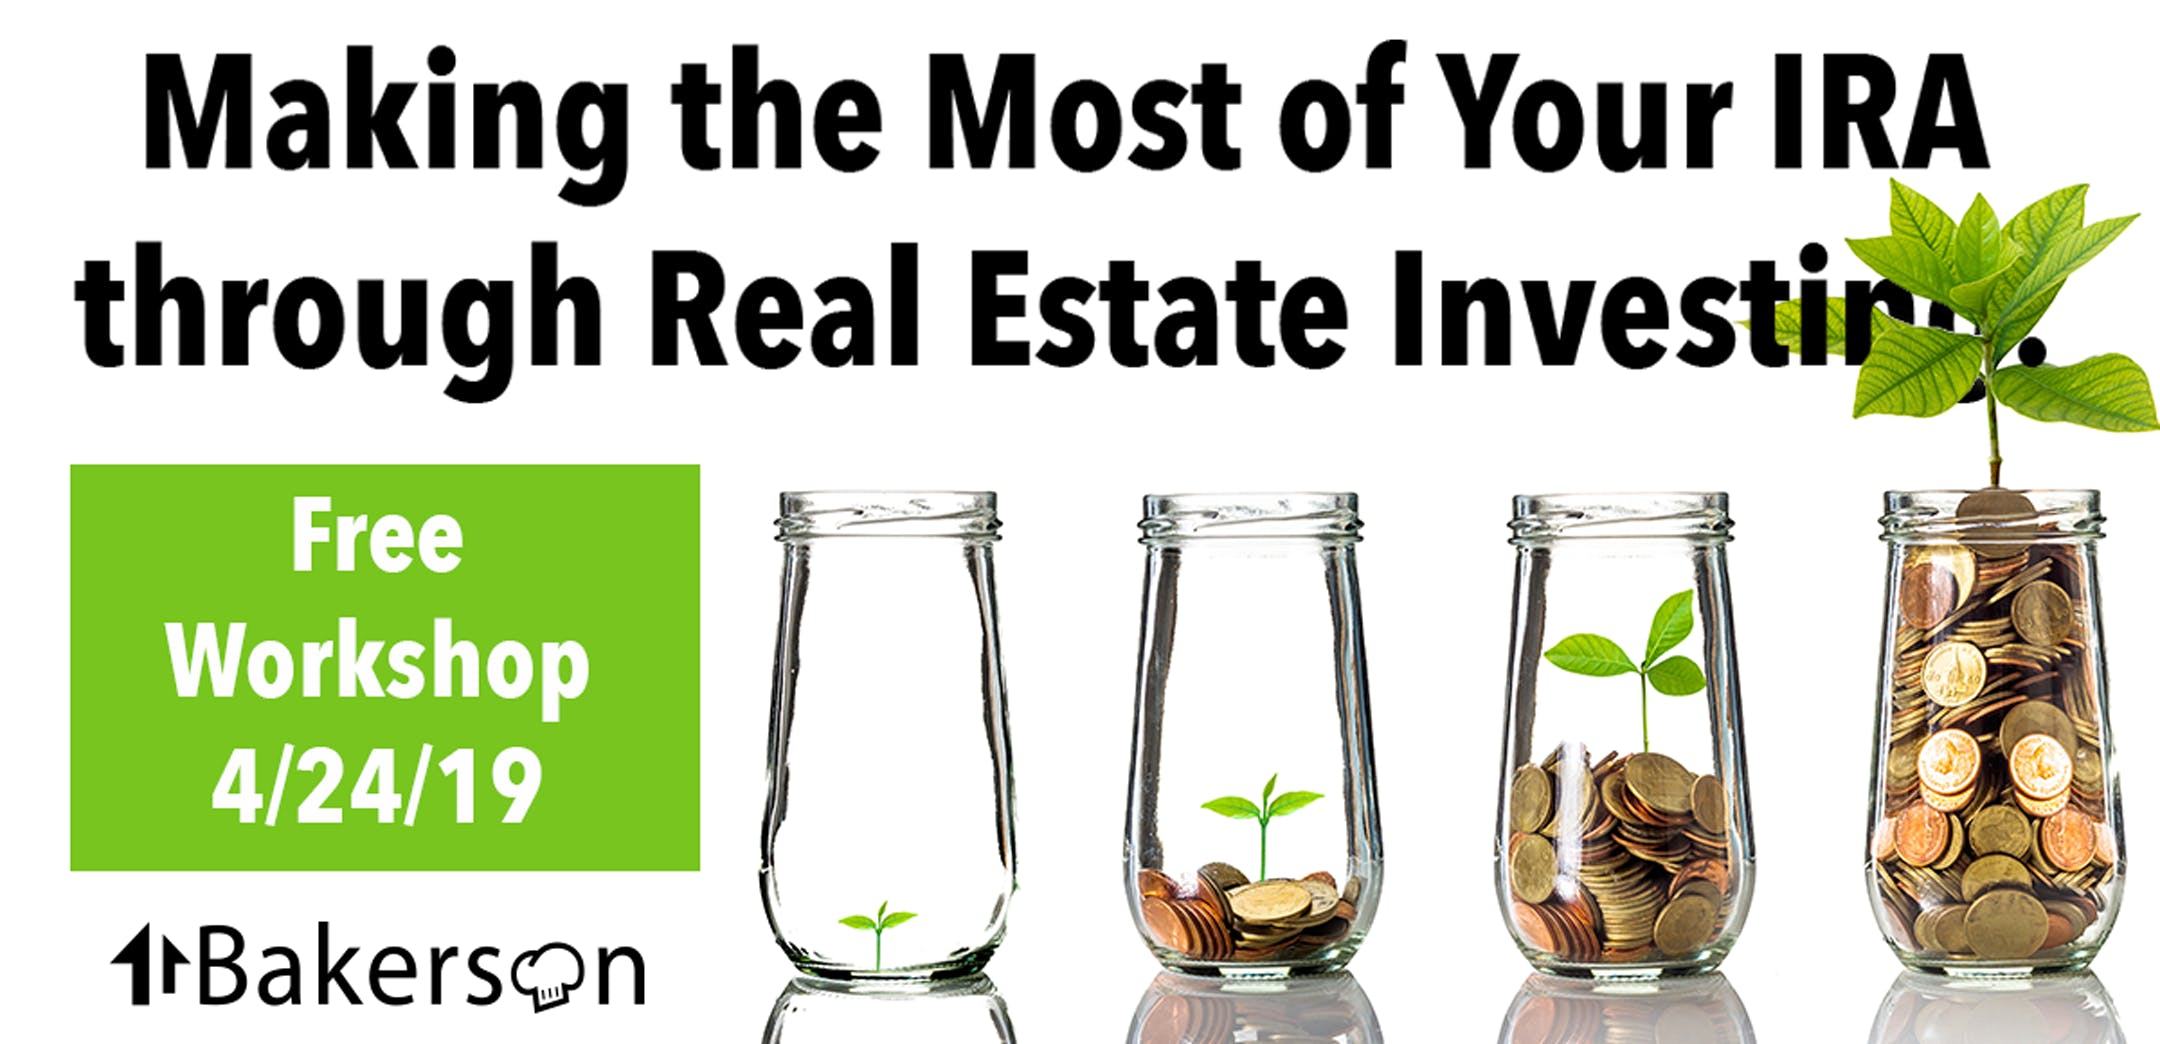 Making the Most of your IRA through Real Estate Investing